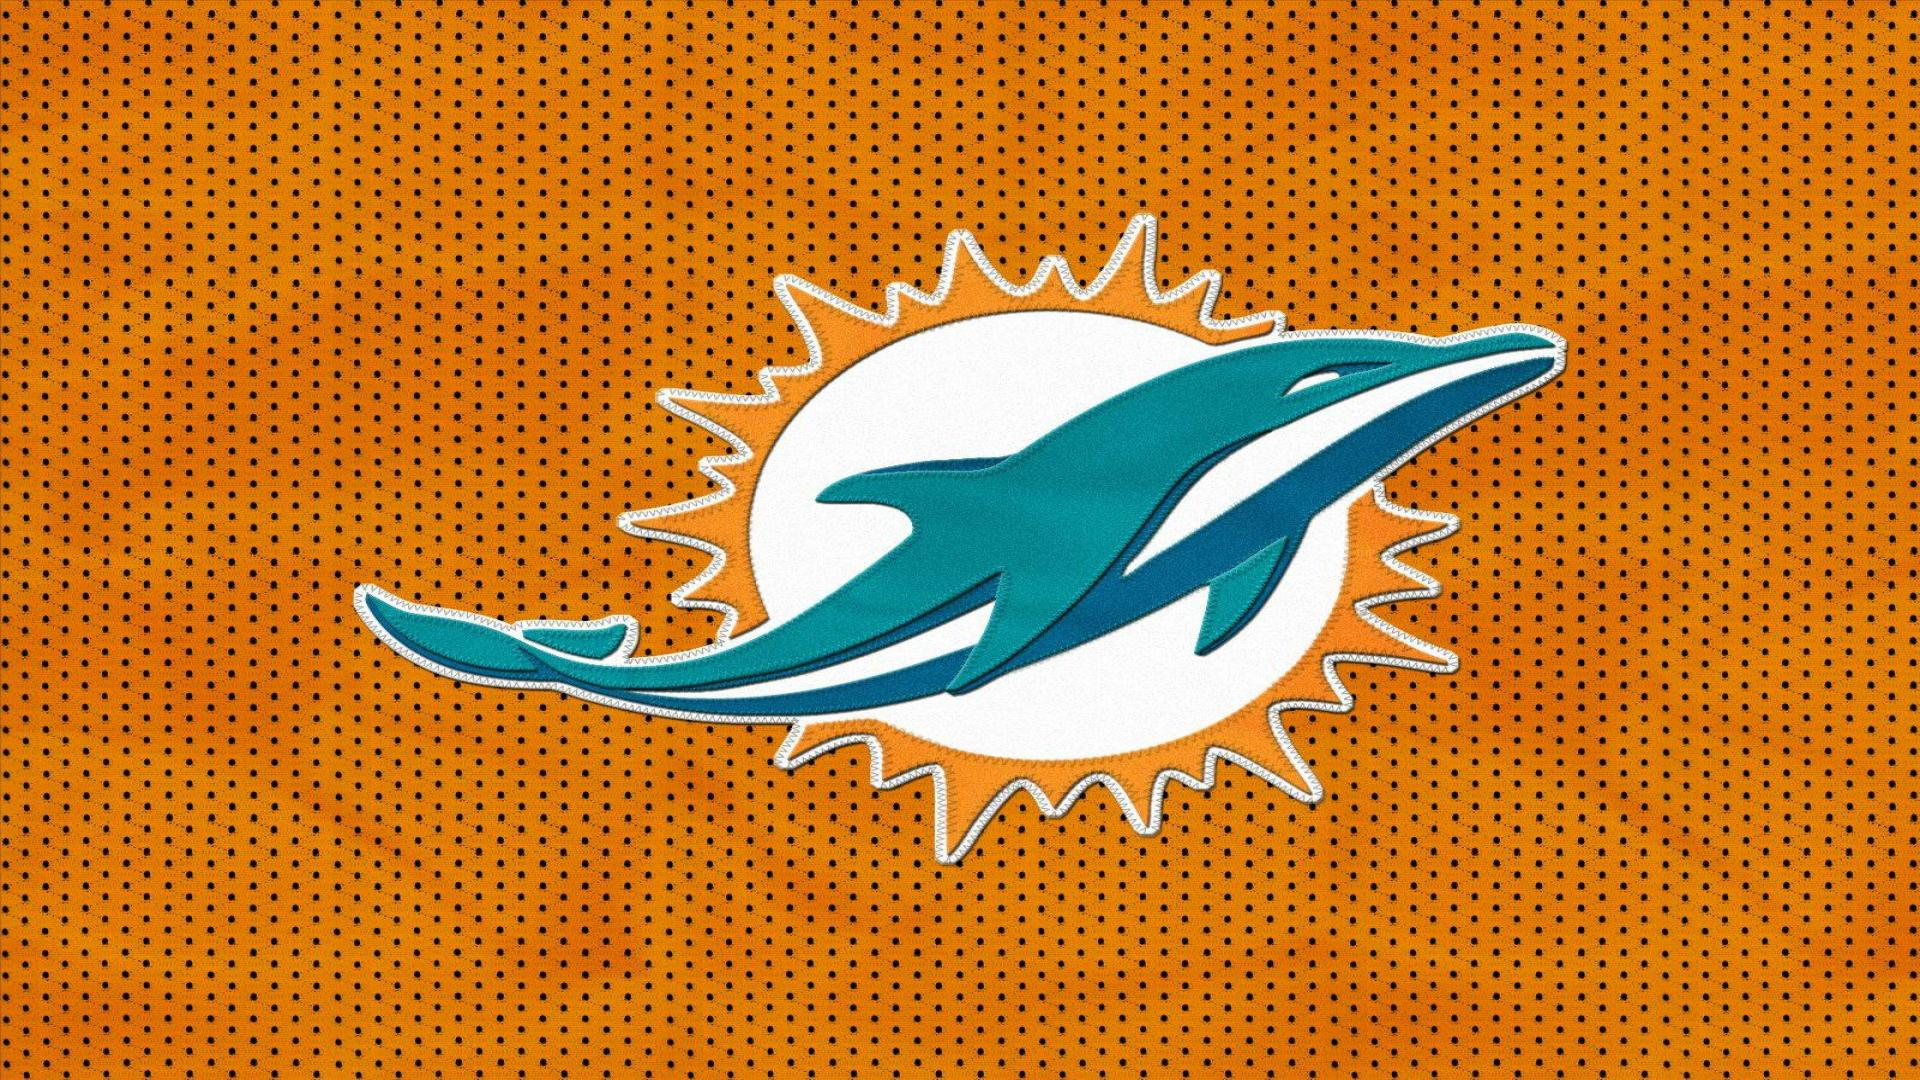 Miami dolphins nfl football 4 wallpaper 1920x1080 154791 miami dolphins nfl football 4 wallpaper 1920x1080 154791 wallpaperup voltagebd Image collections